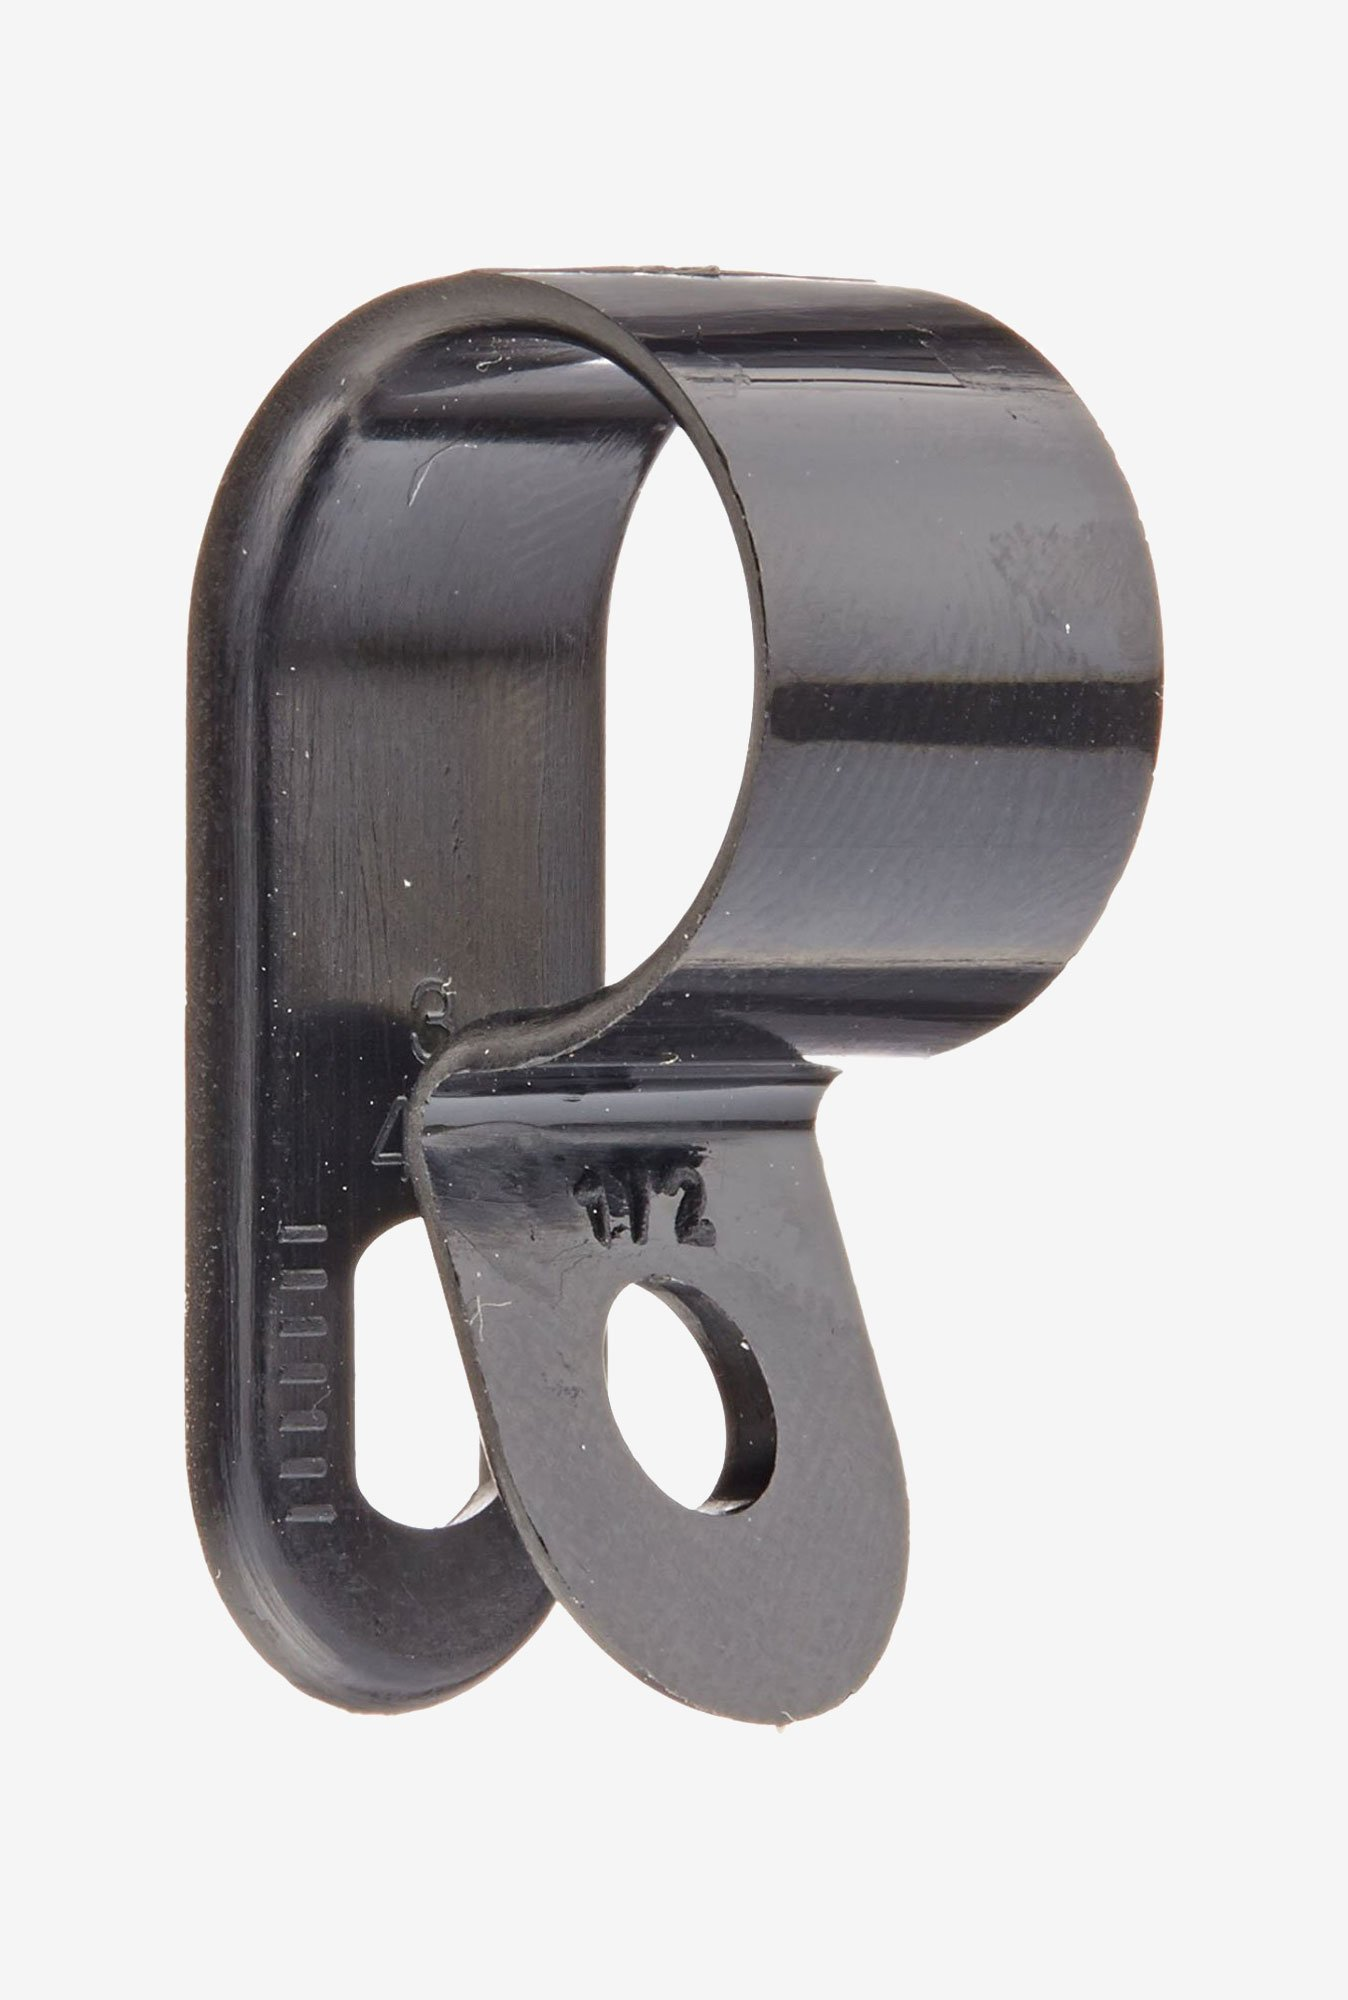 NSI Industries NC-500-0 Standard Duty Cable Clamp (Black)